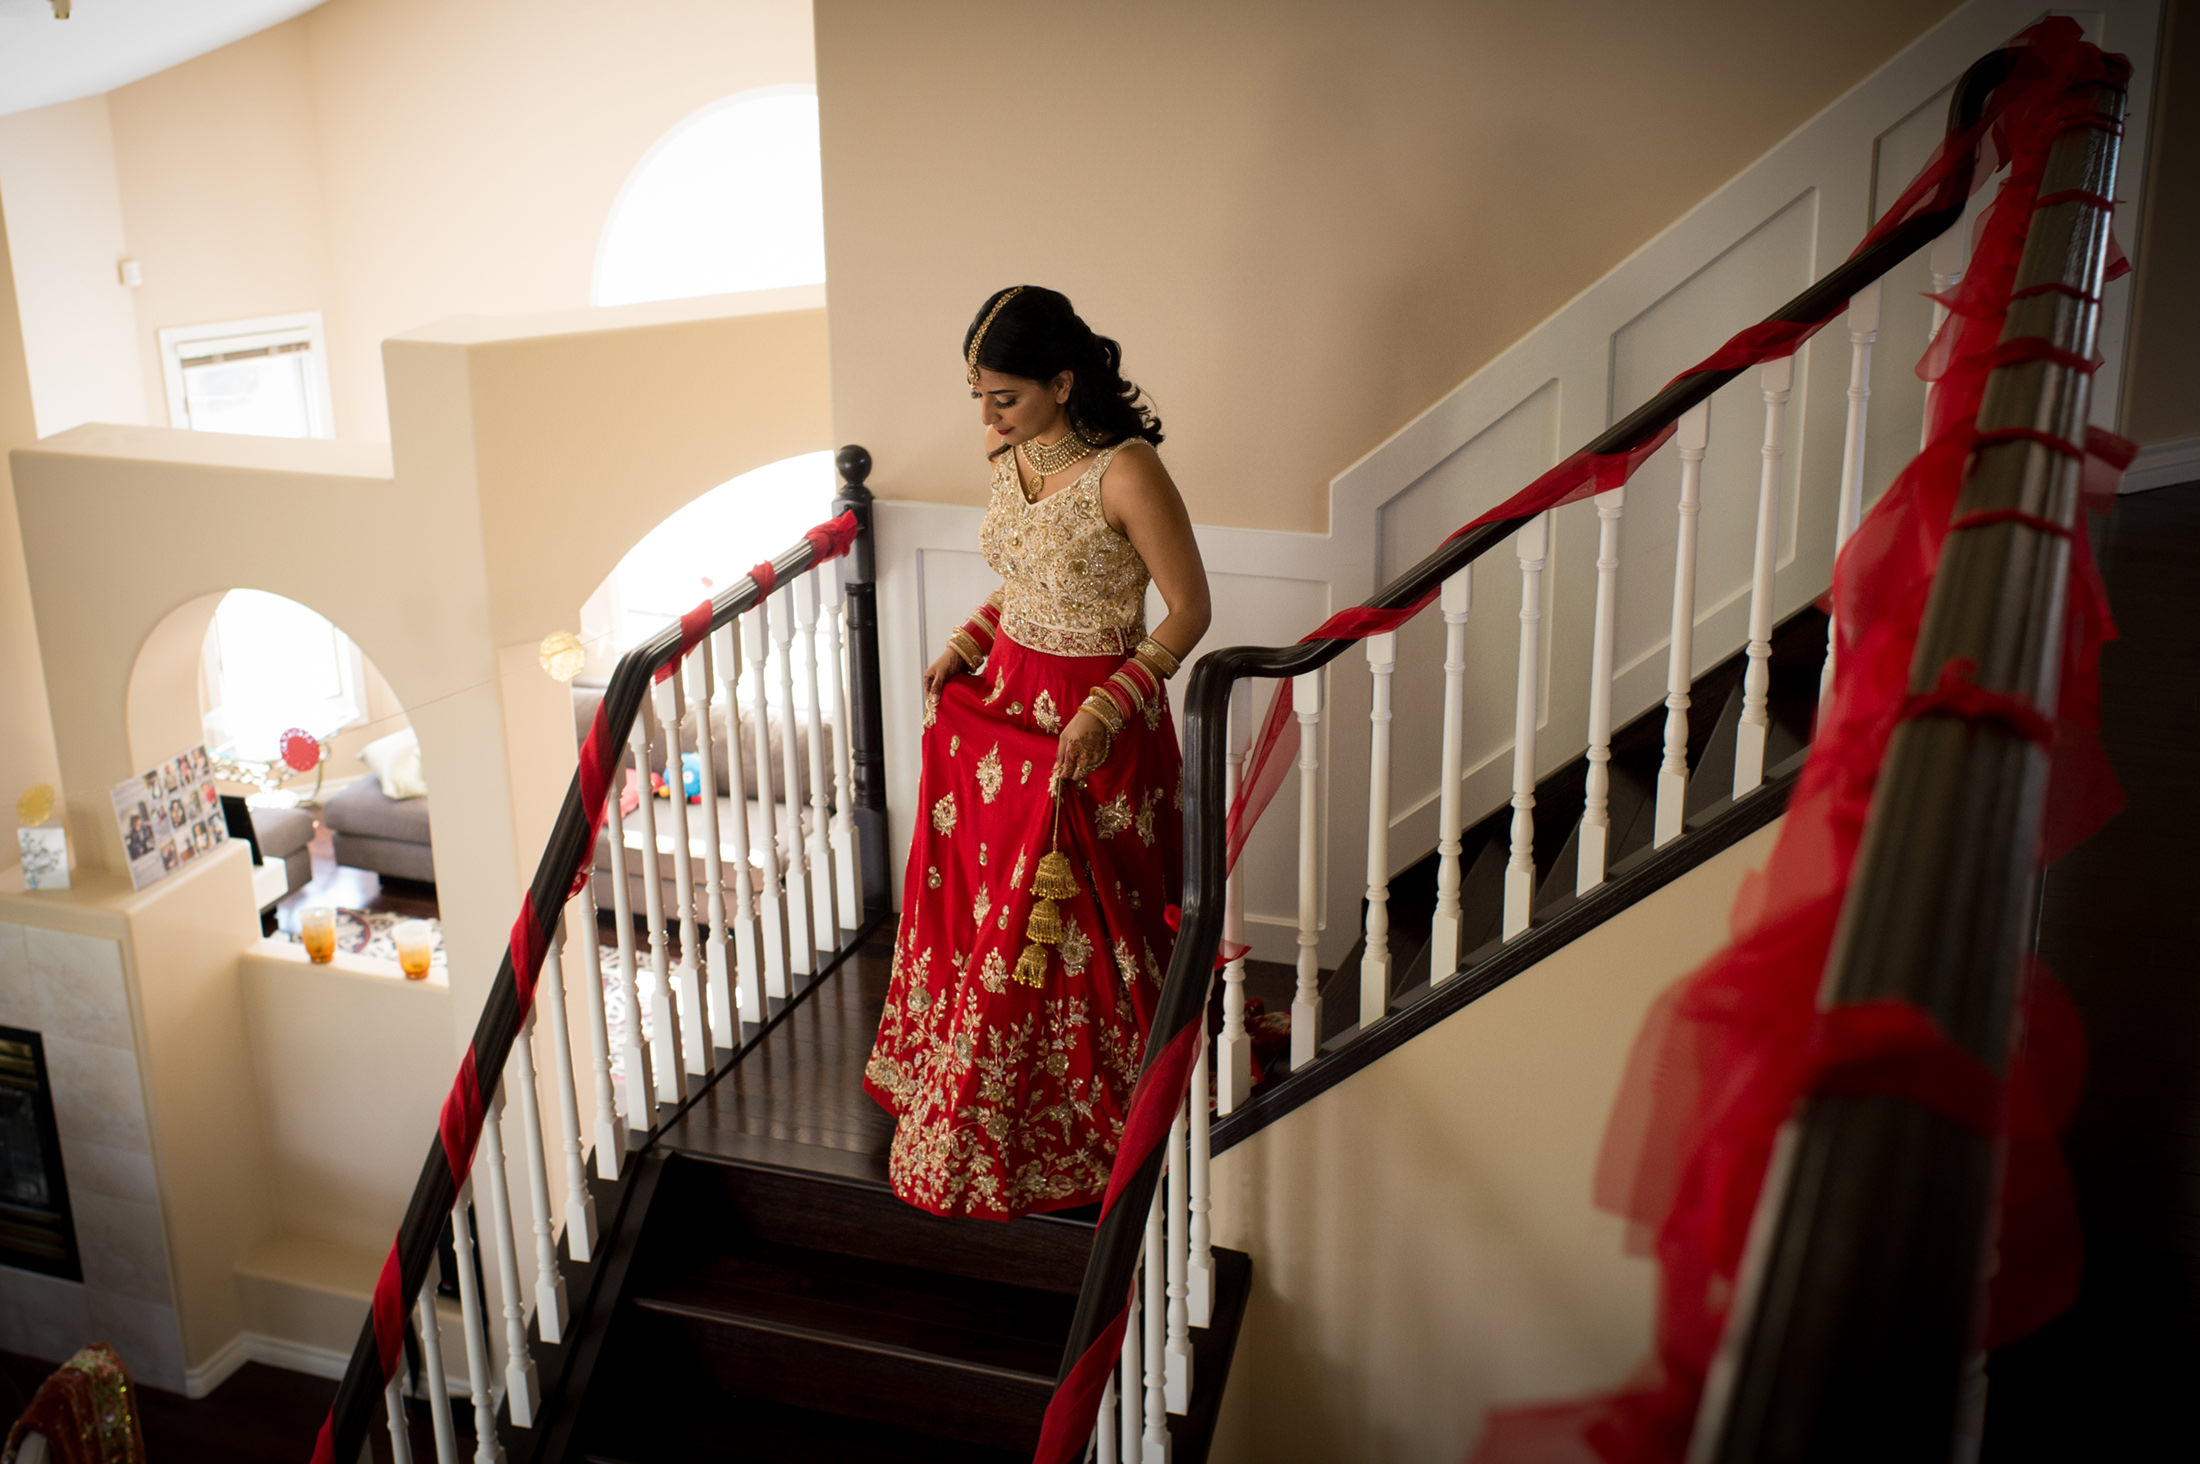 Edmonton_wedding_photographers_enjoy_center_wedding_Kiran_faisal_08.jpg